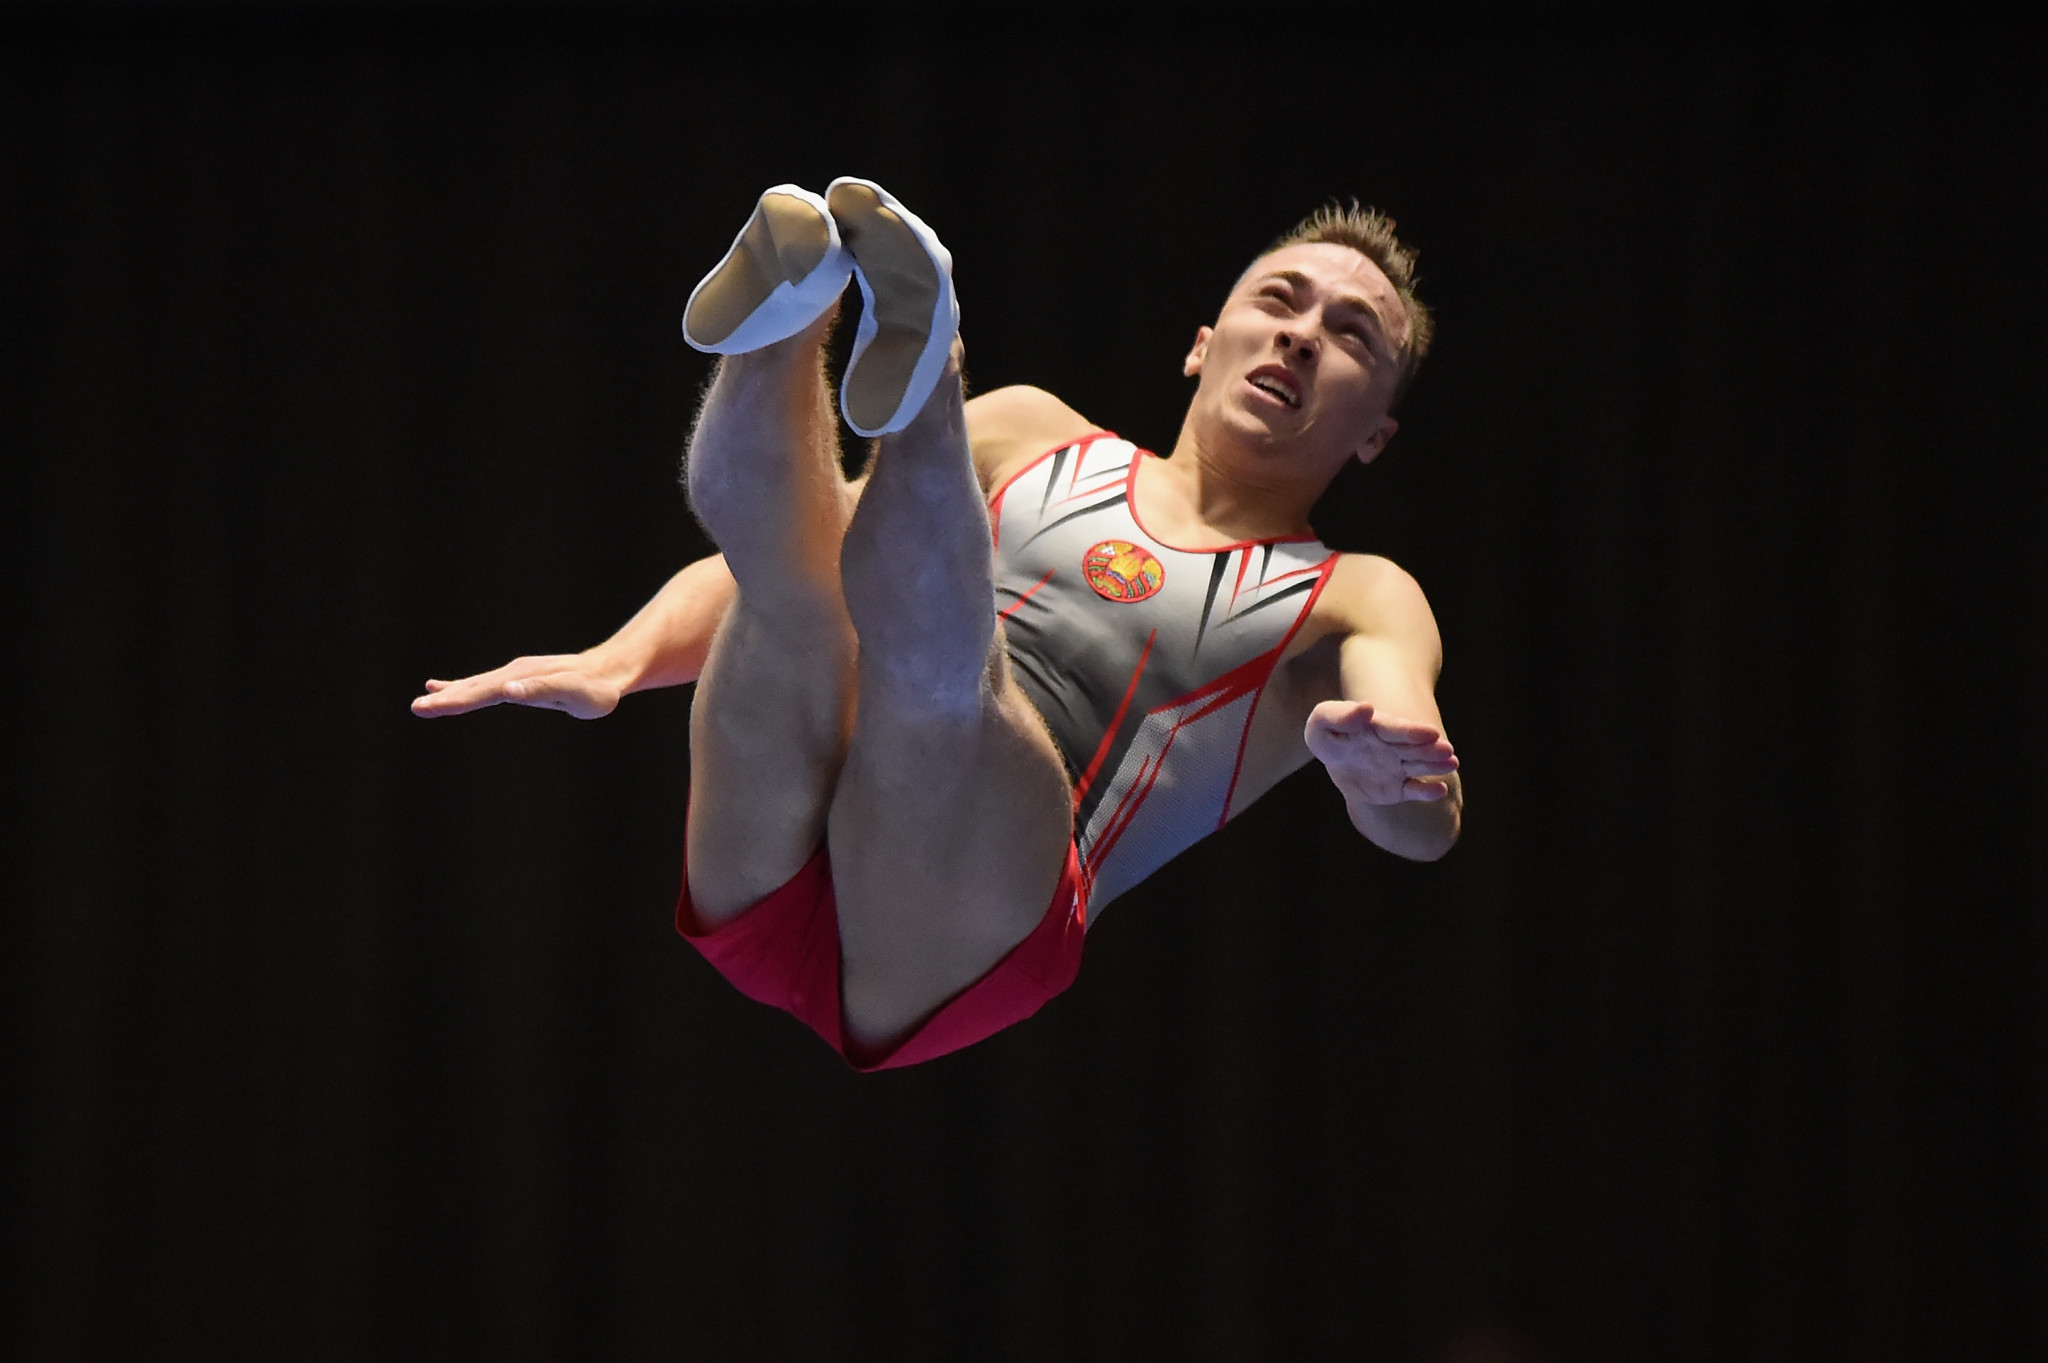 Olympic champion Uladzislau Hancharou topped men's qualifying in the individual trampoline event at the FIG Trampoline World Cup ©Getty Images